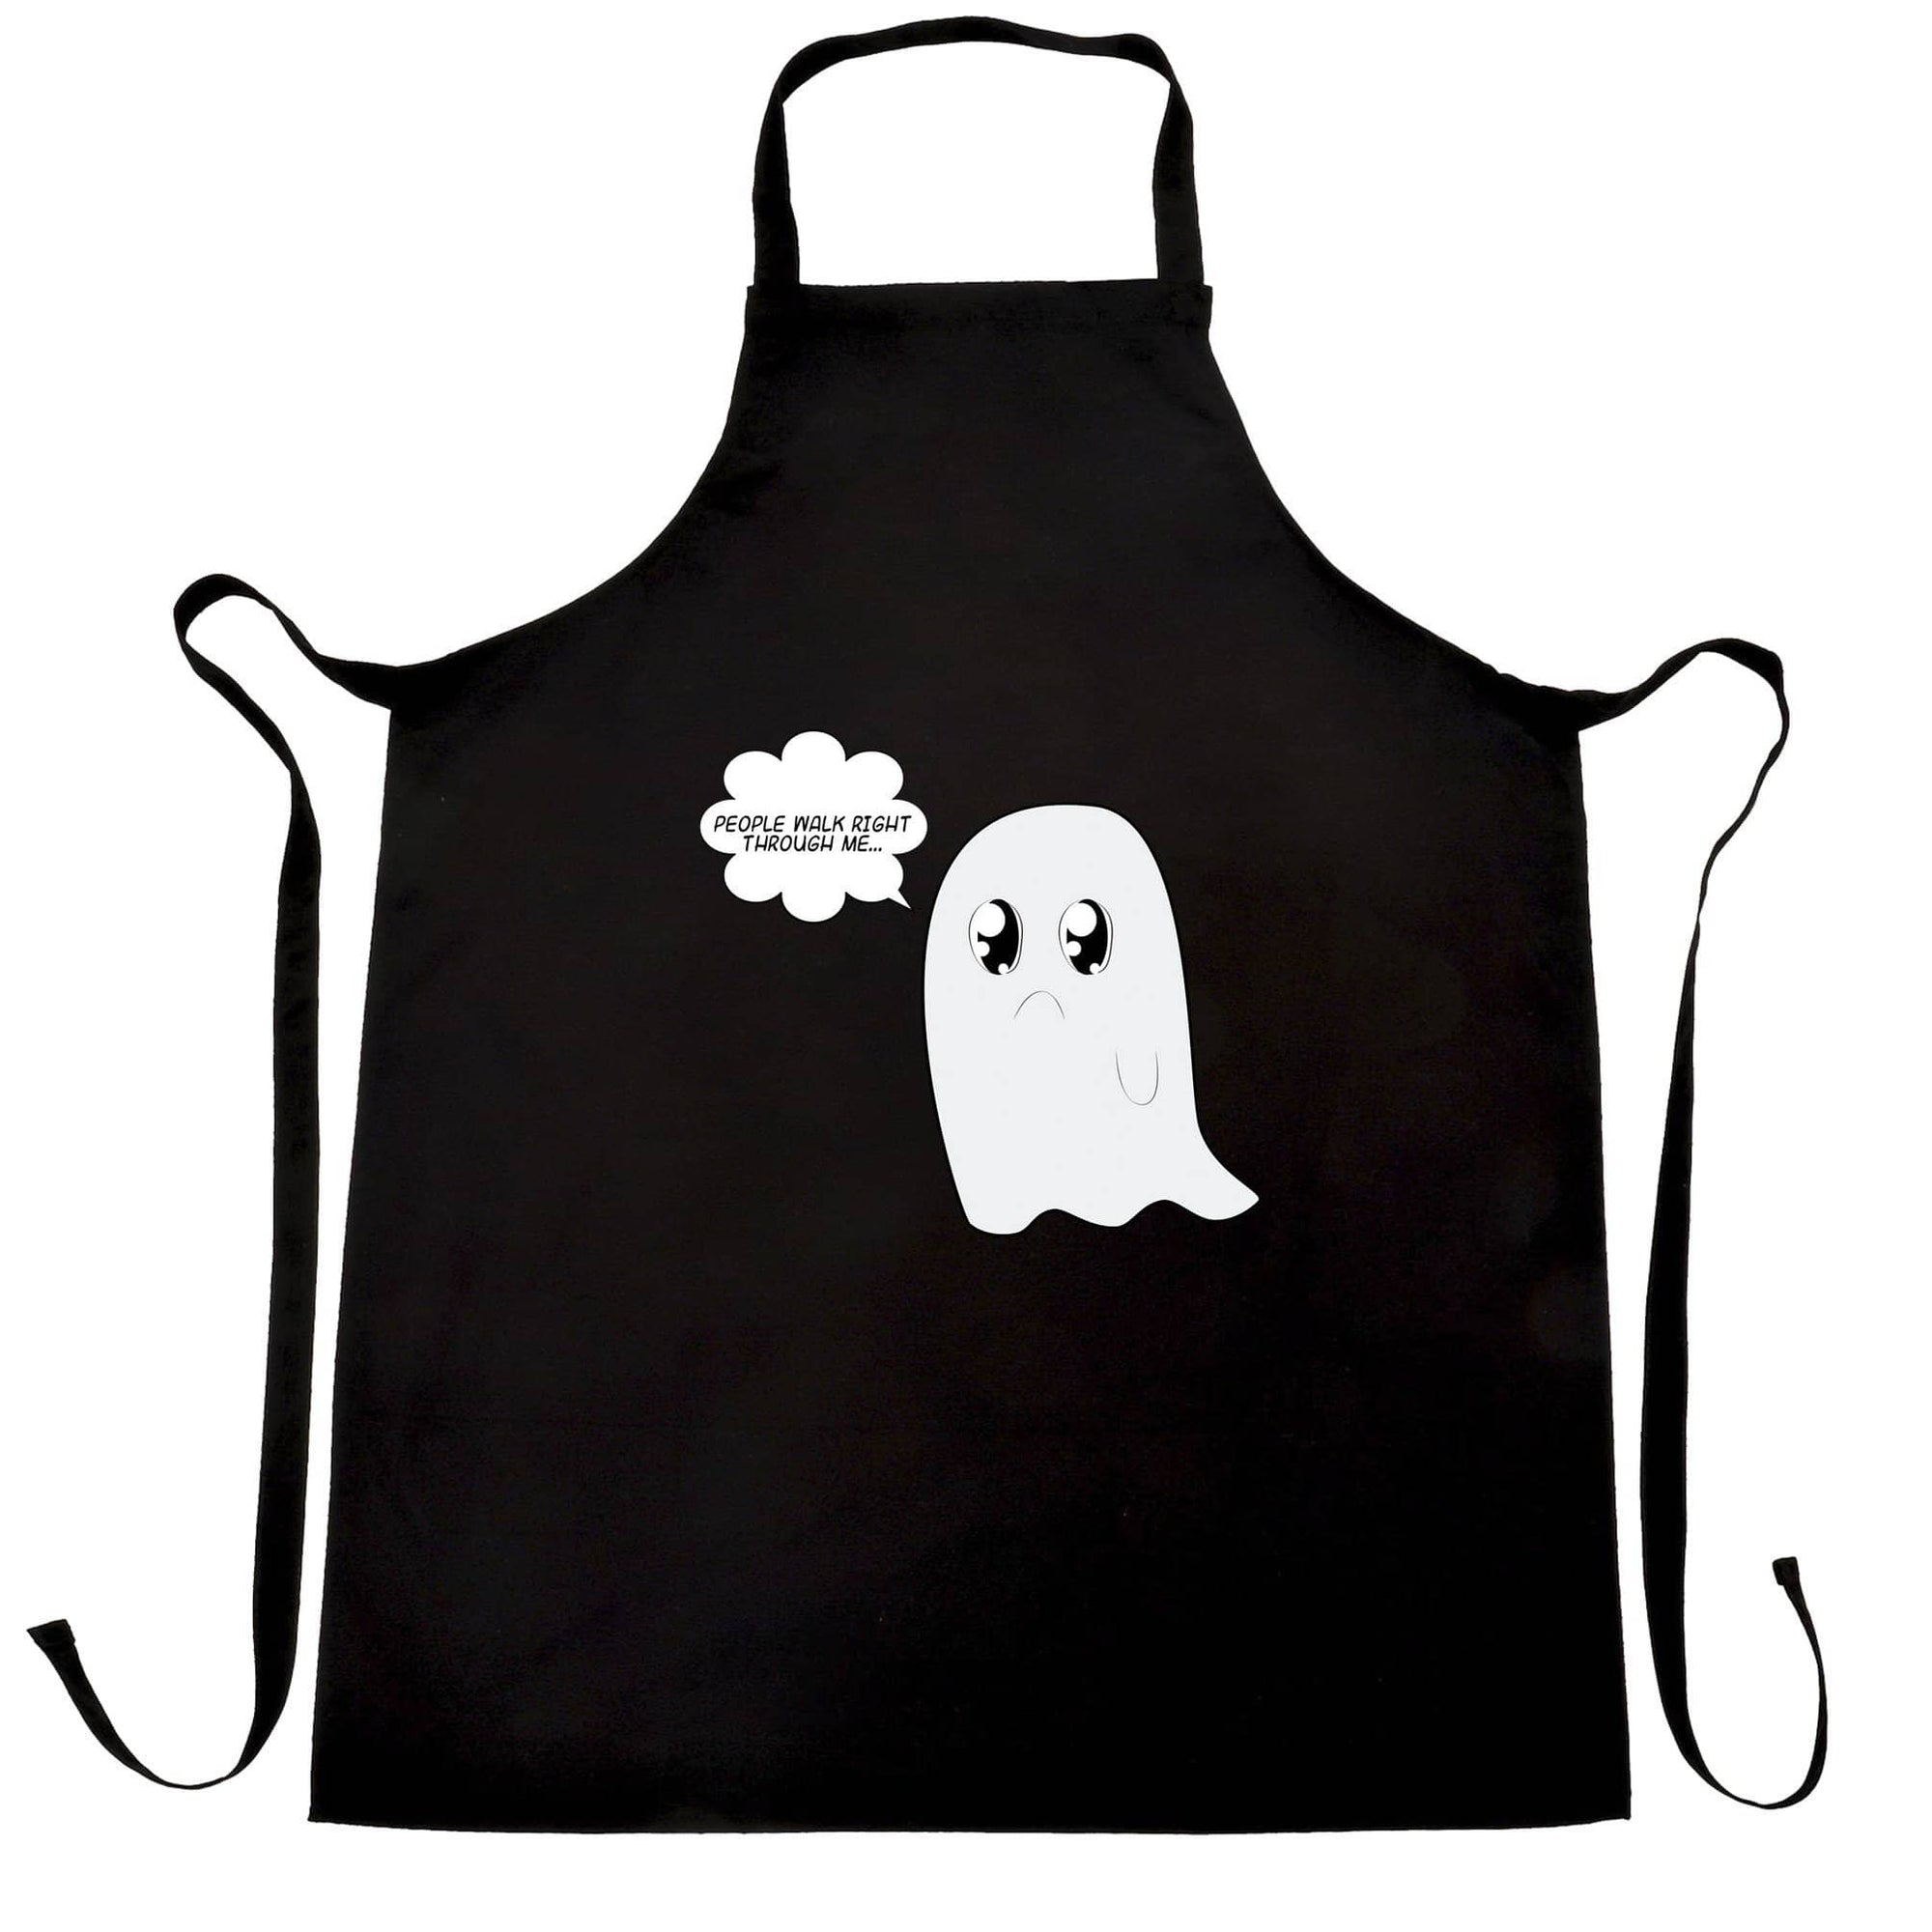 Cute Ghost Chefs Apron People Walk Right Through Me Joke